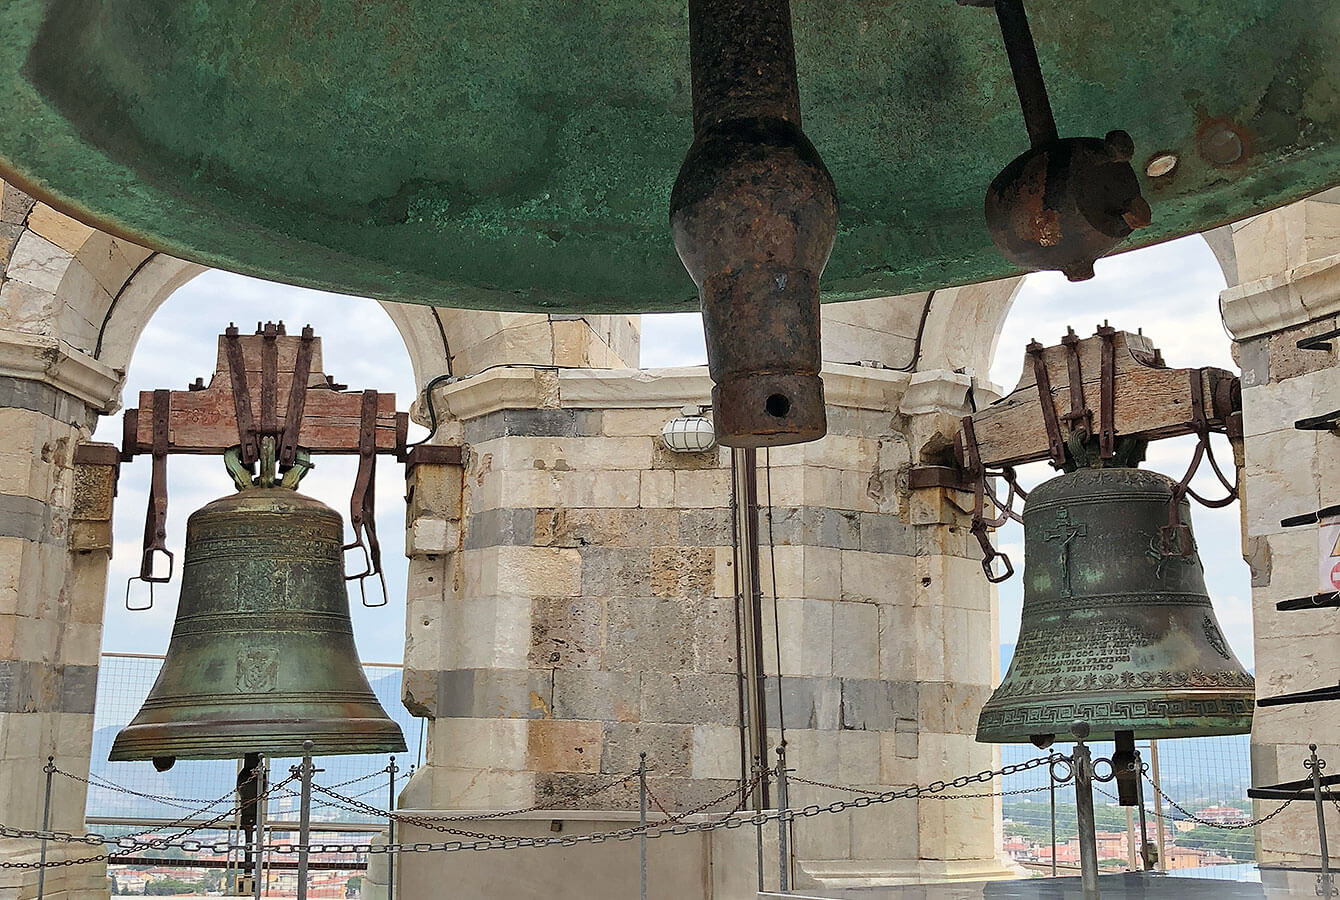 Bells at the top of the Leaning Tower in Pisa, Tuscany, Italy